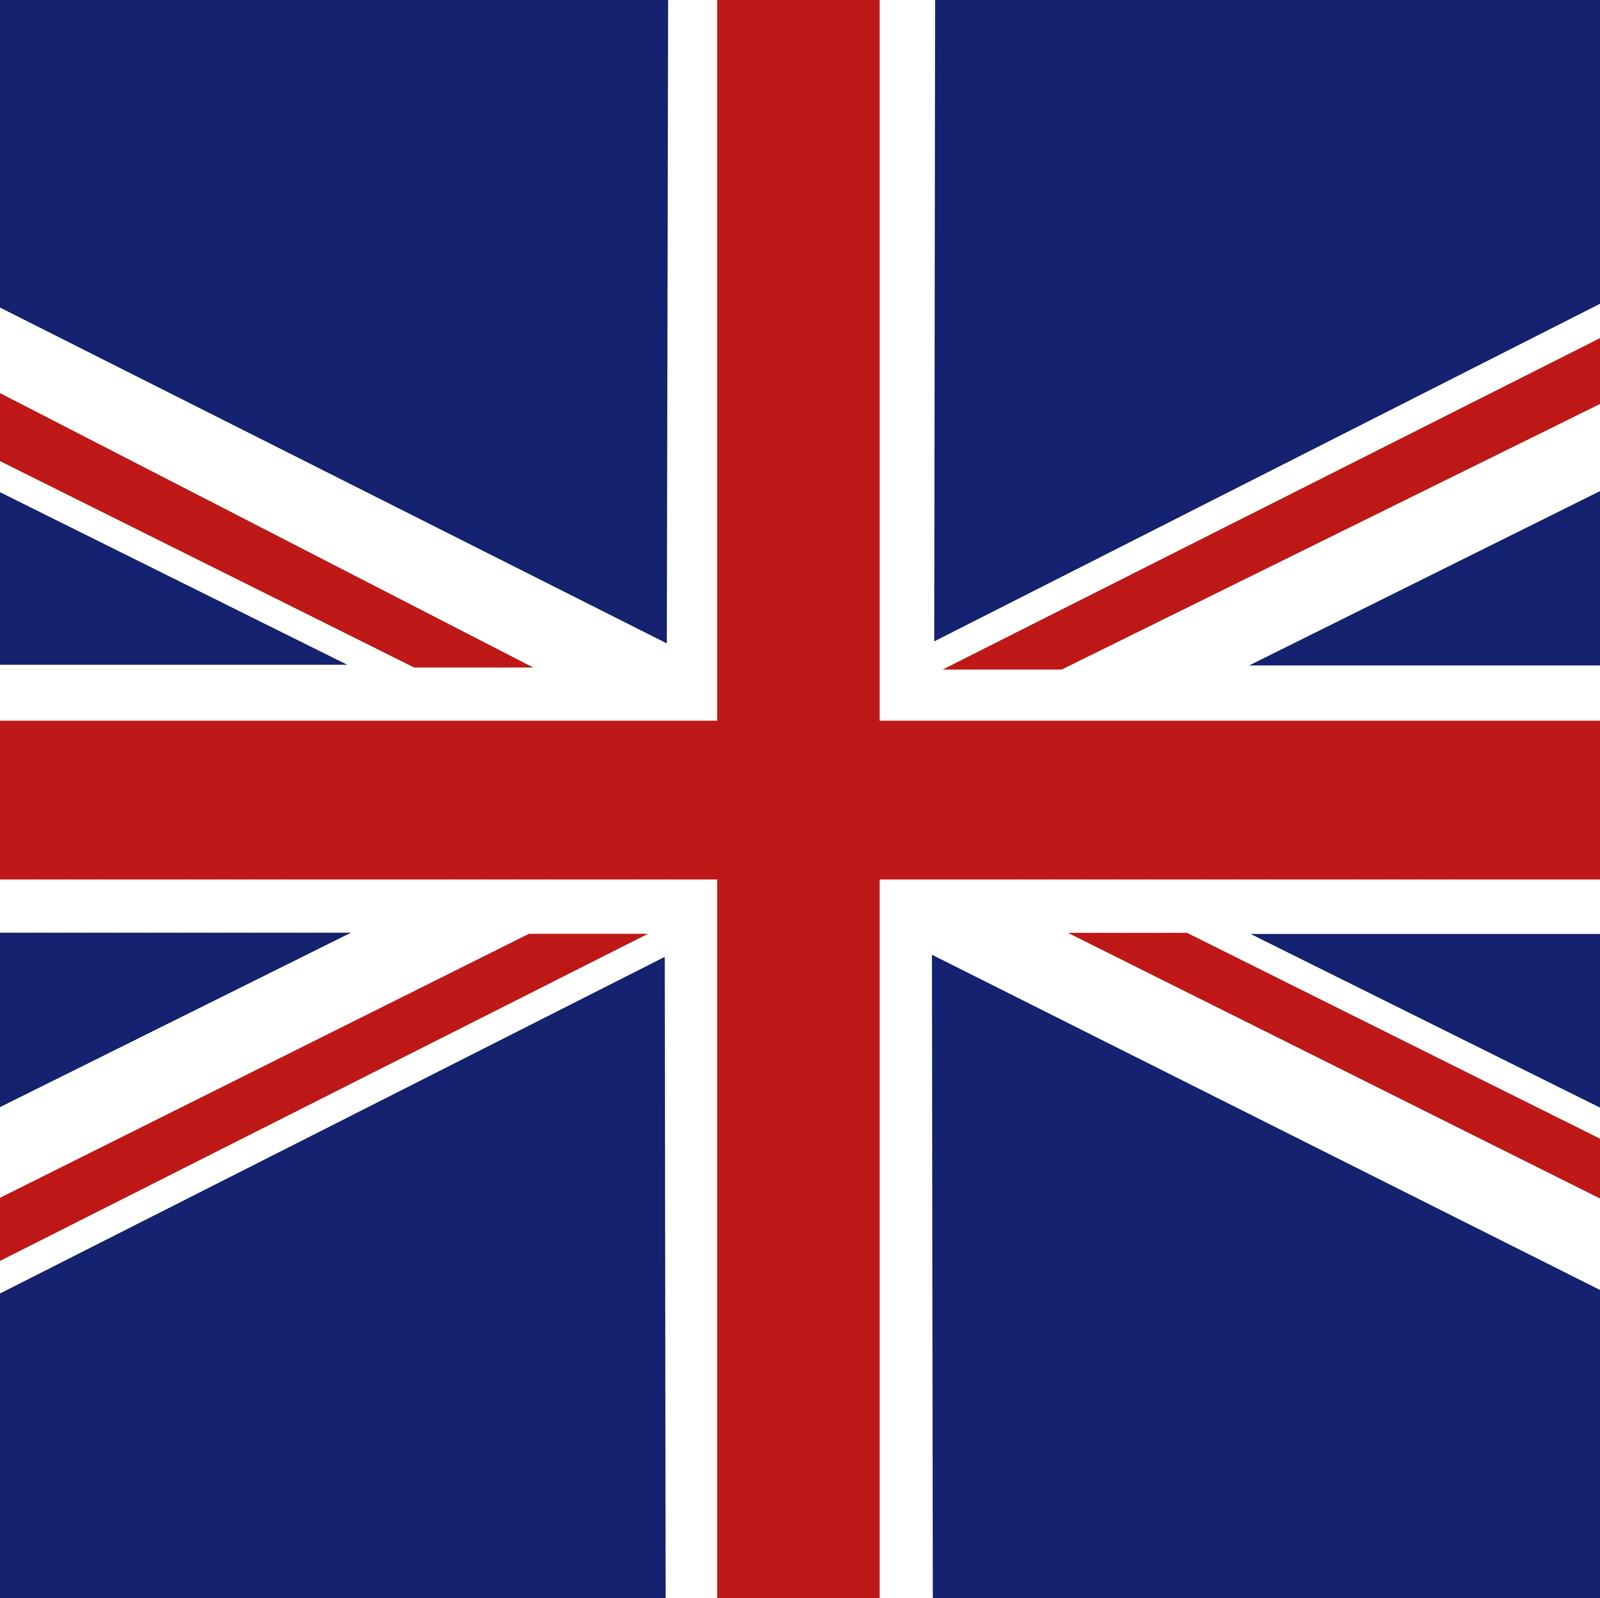 Free photo: Union Jack Clipart.